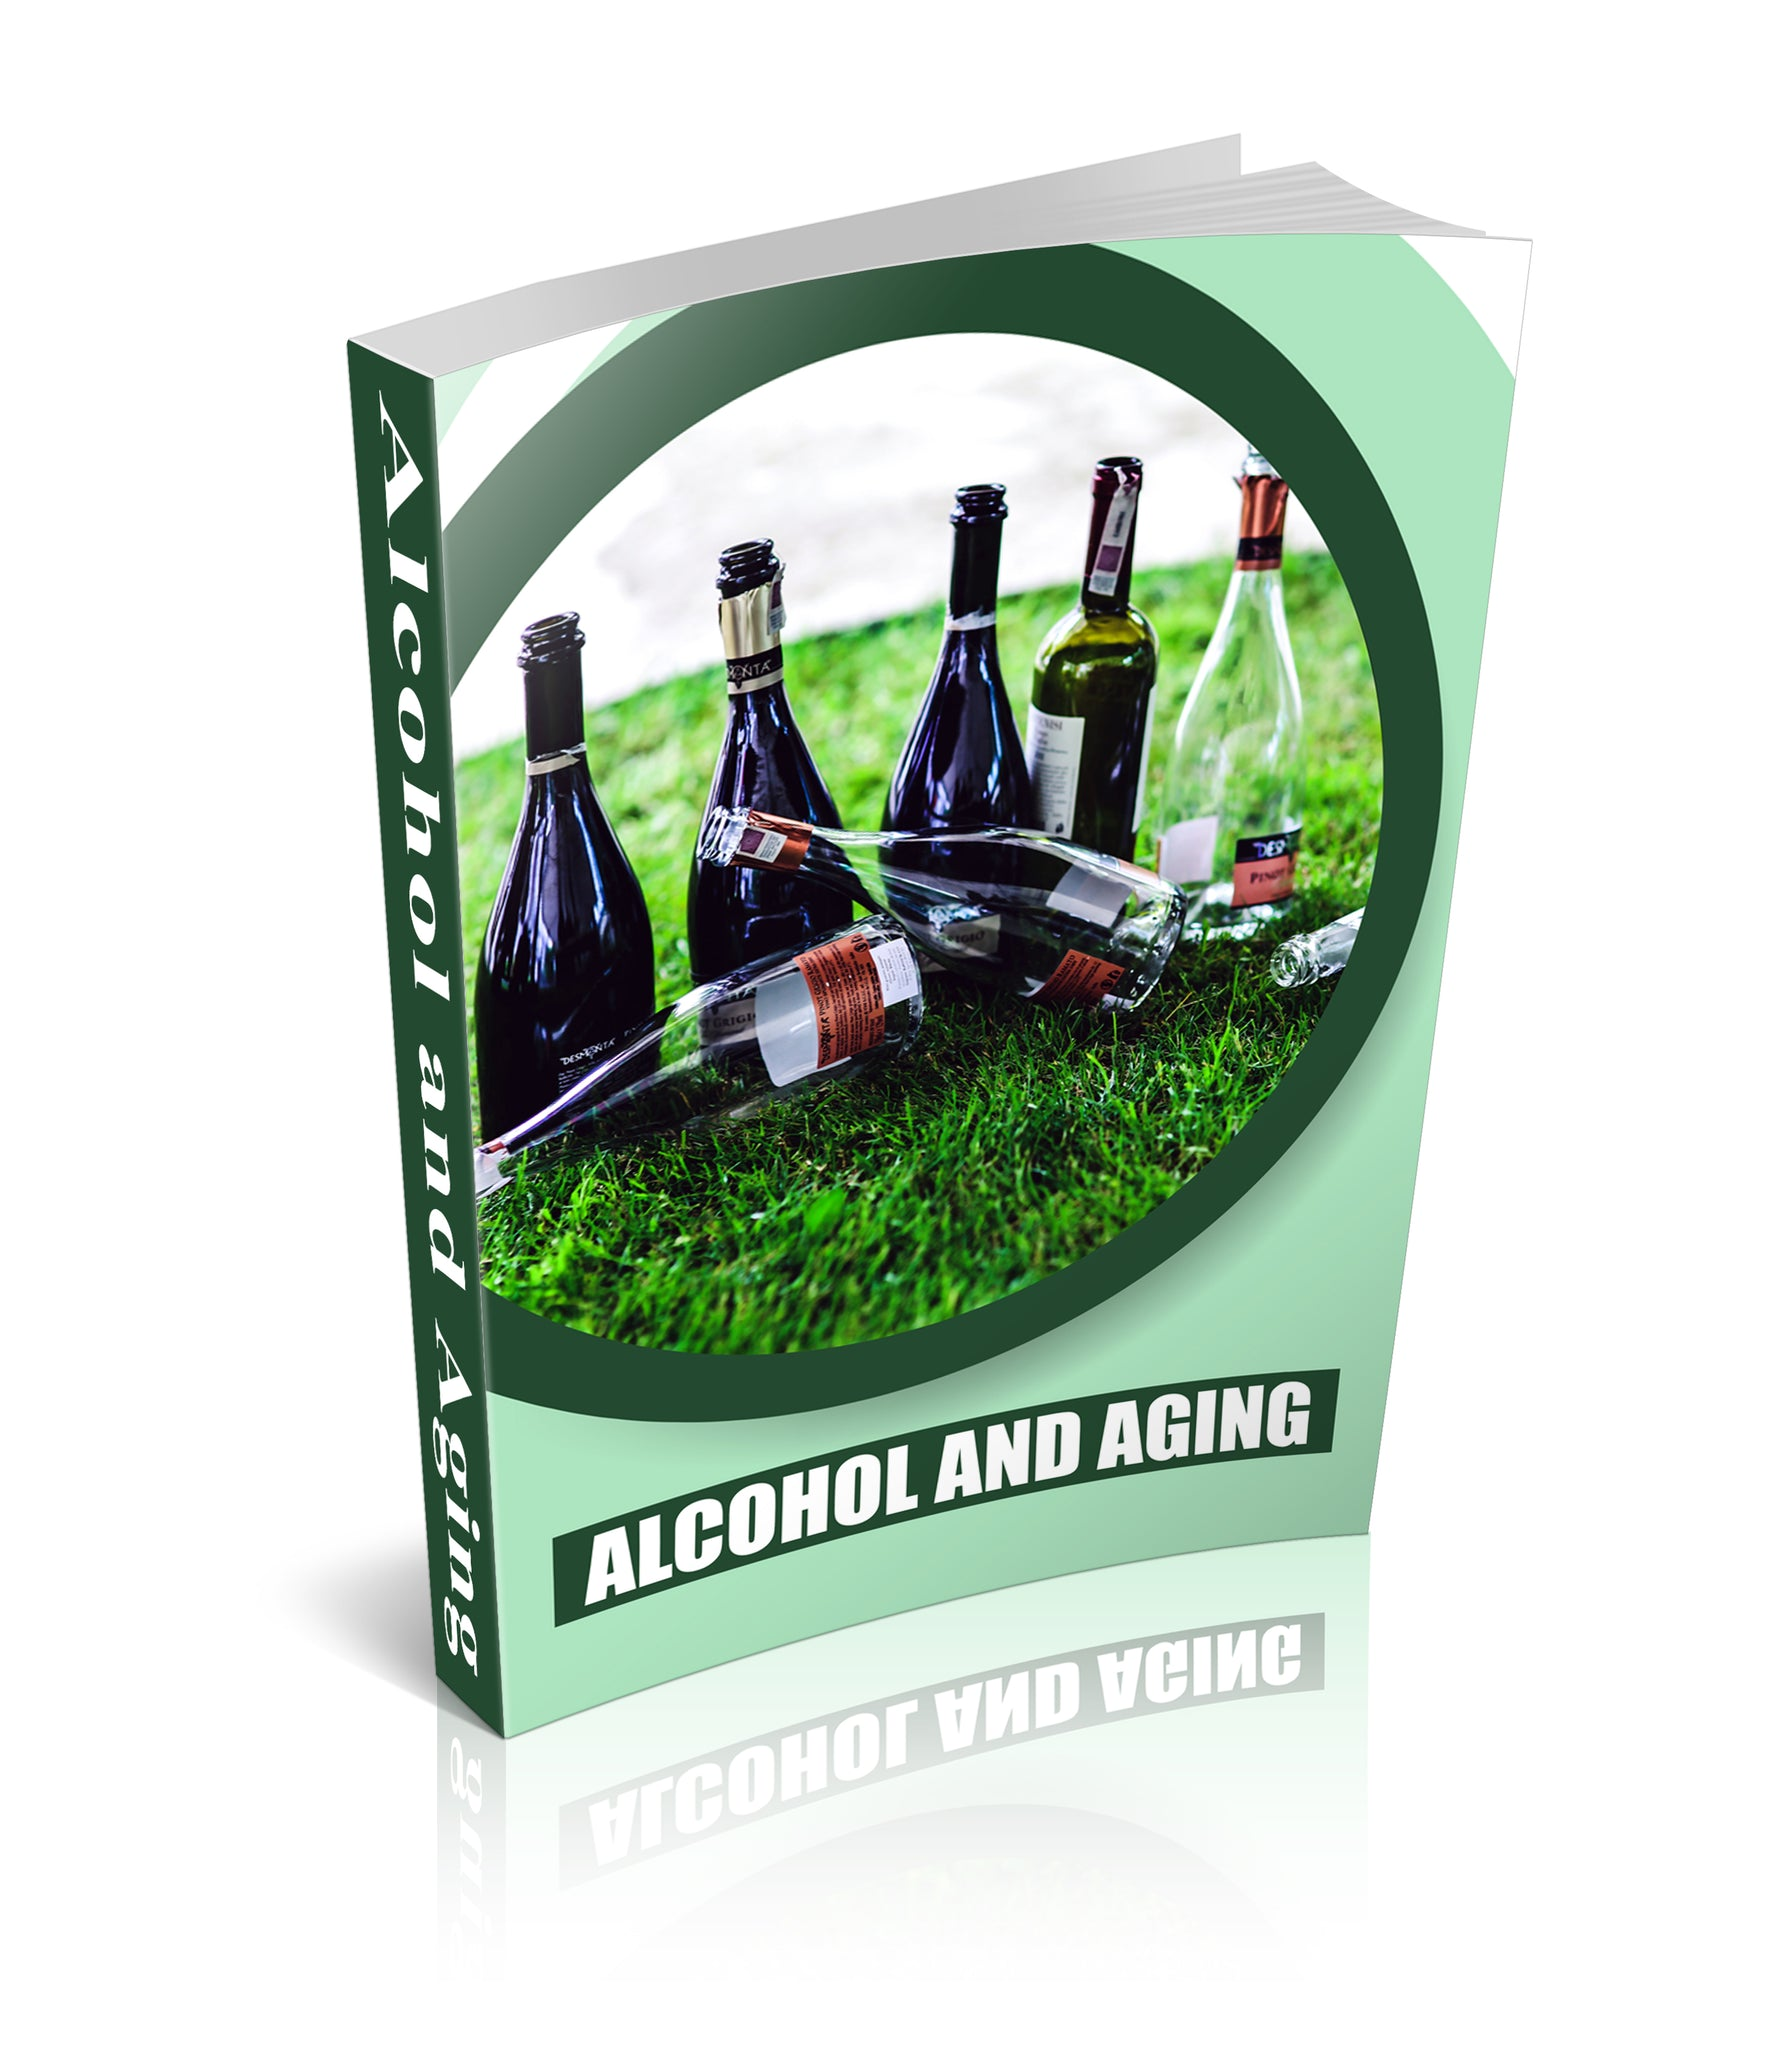 Alcohol and Aging - Free Downloadable Book - traversebayfarms